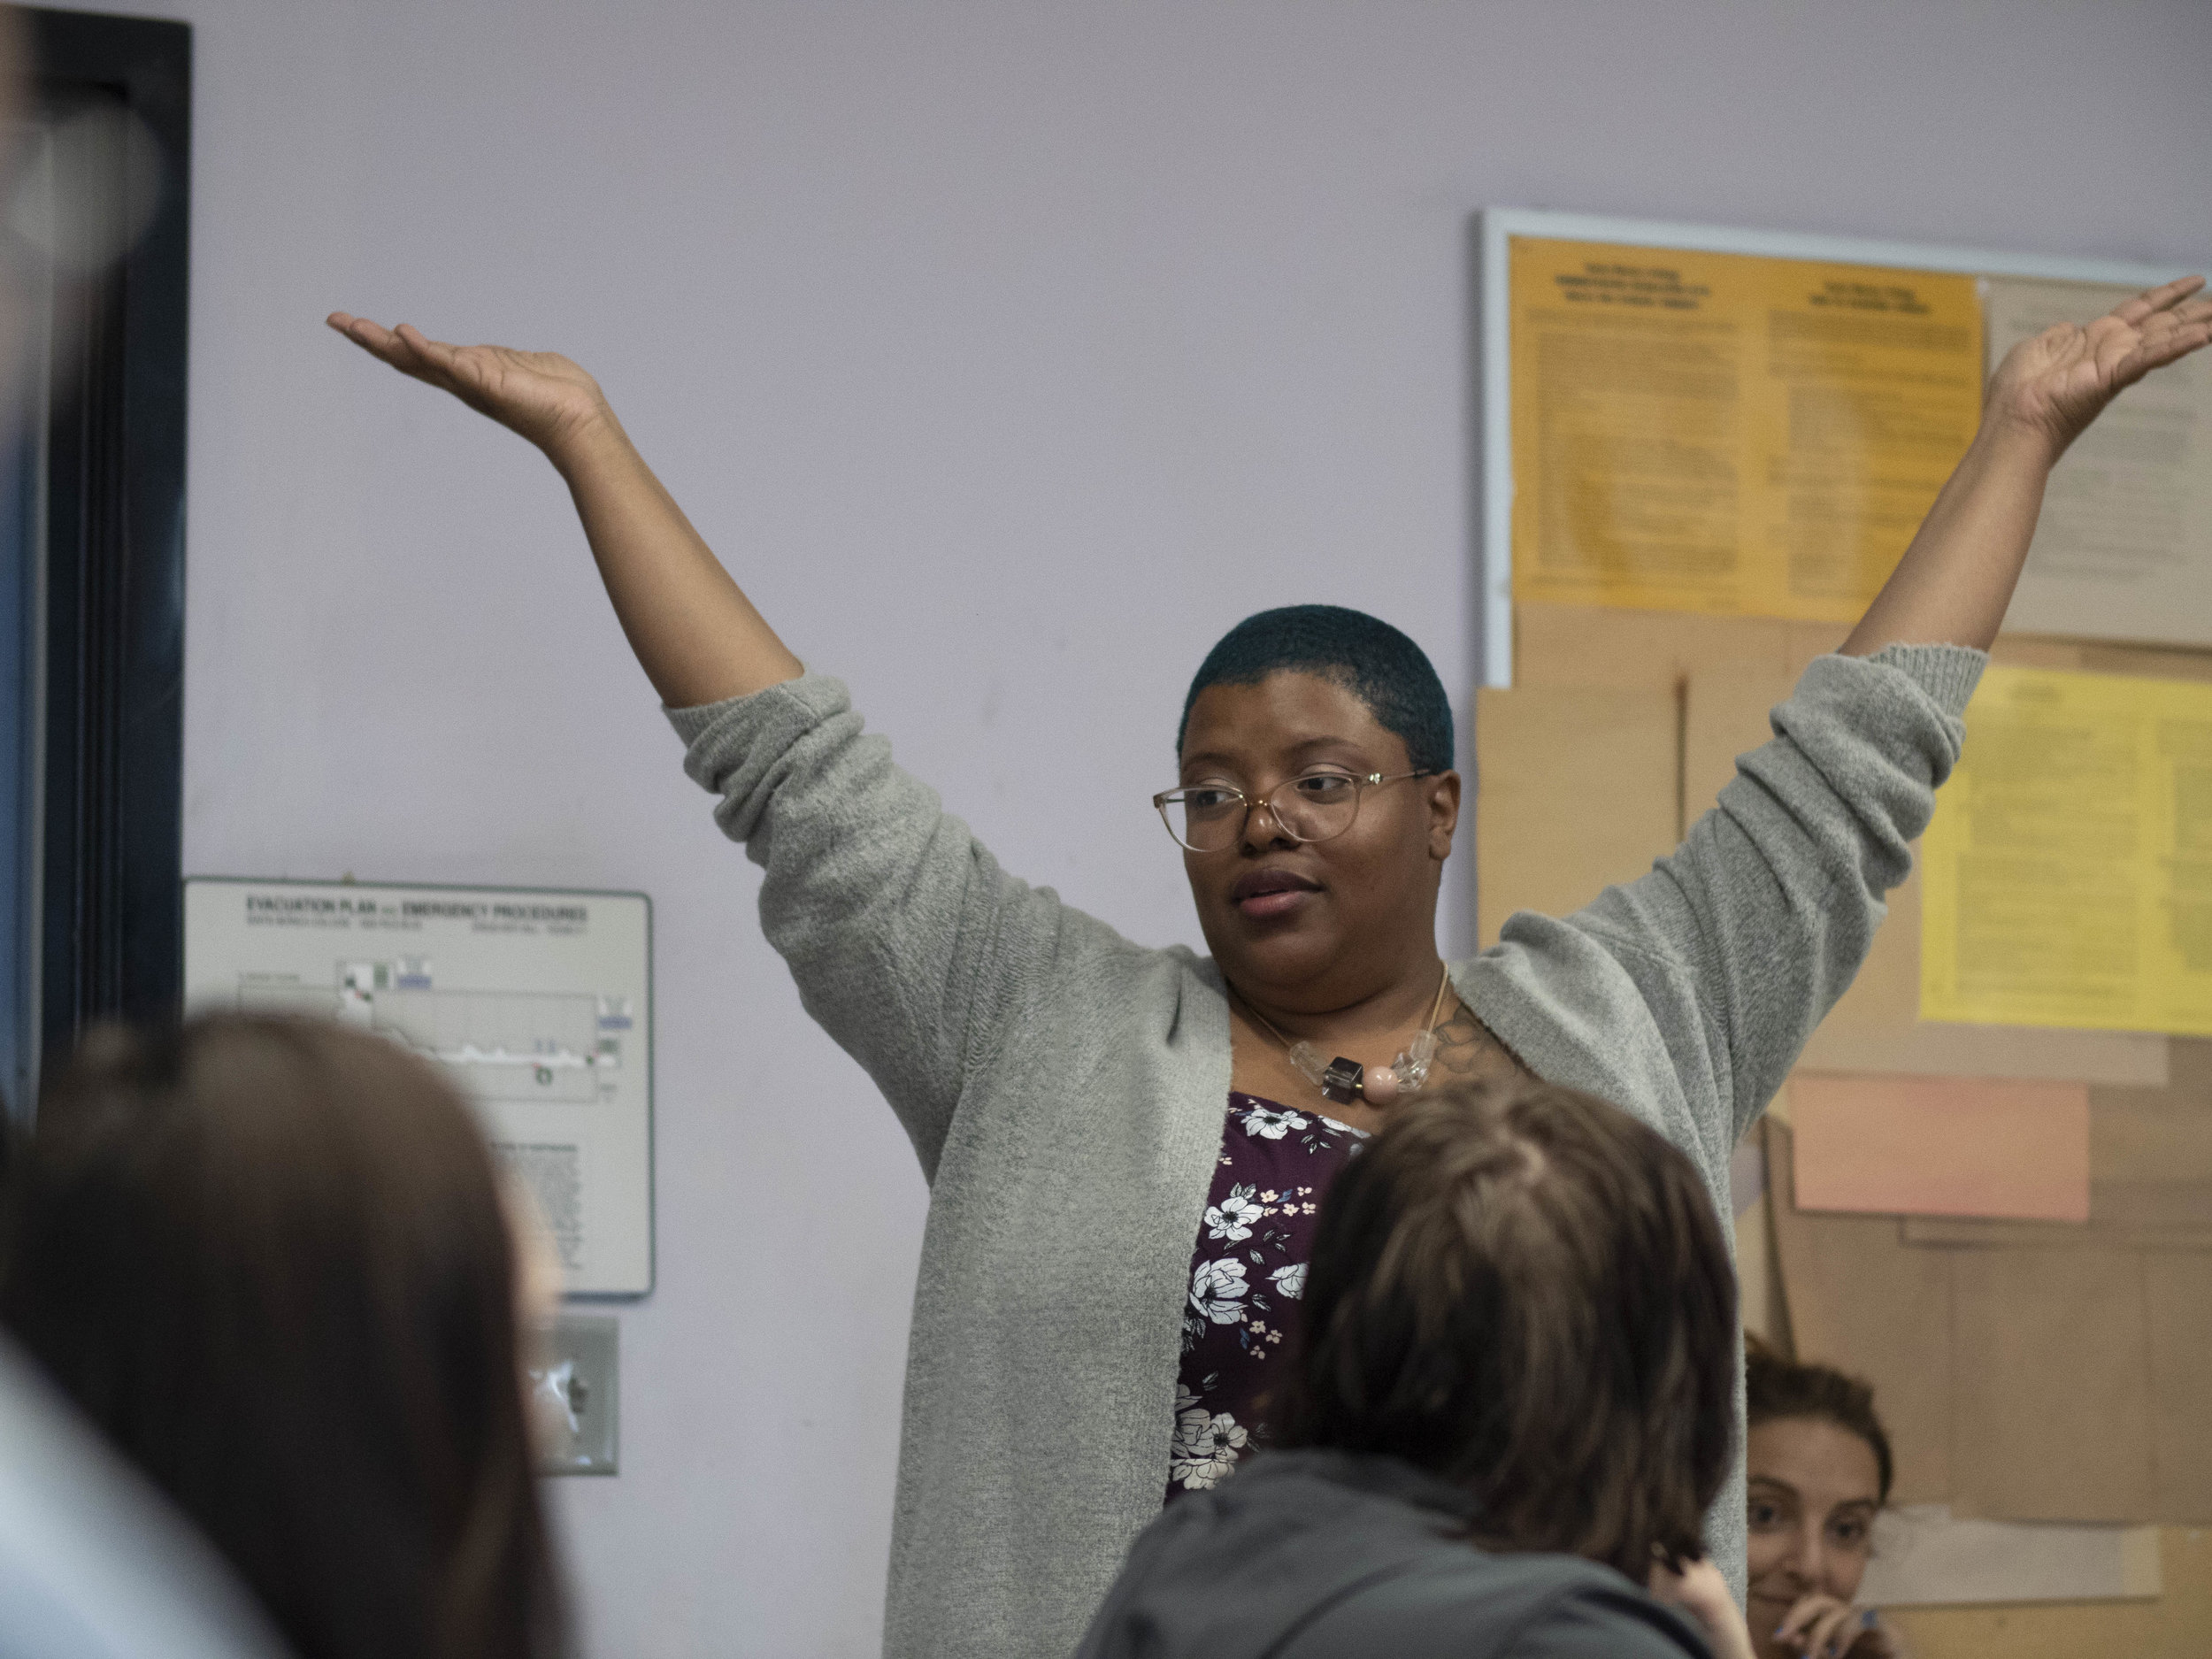 Bridgette Robinson engages students in her English composition class at Drescher Hall, at Santa Monica College, Santa Monica, California.  (Victor Noerdlinger/Corsair Staff)